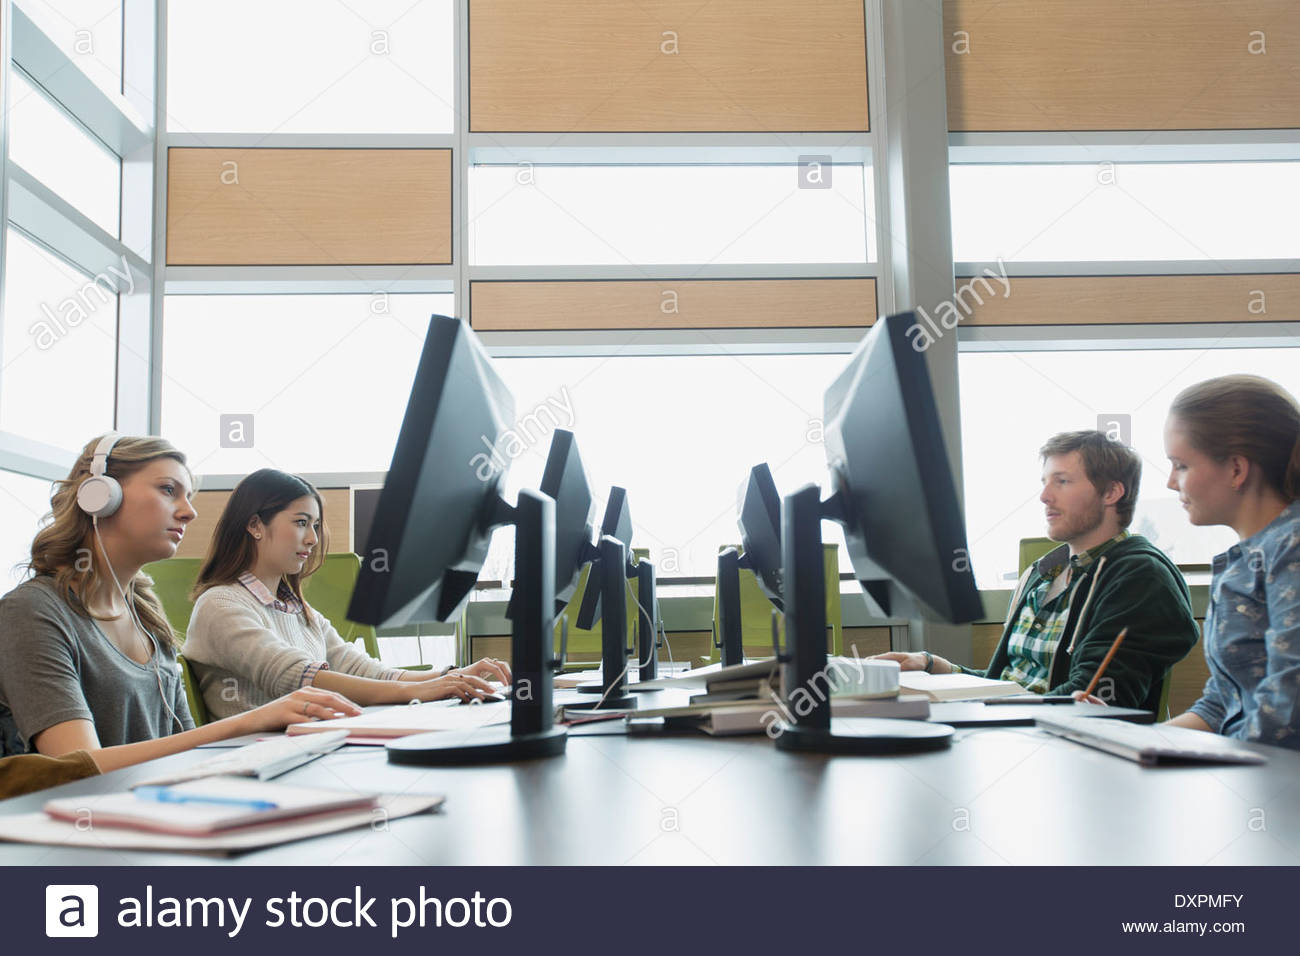 College students working in computer lab - Stock Image